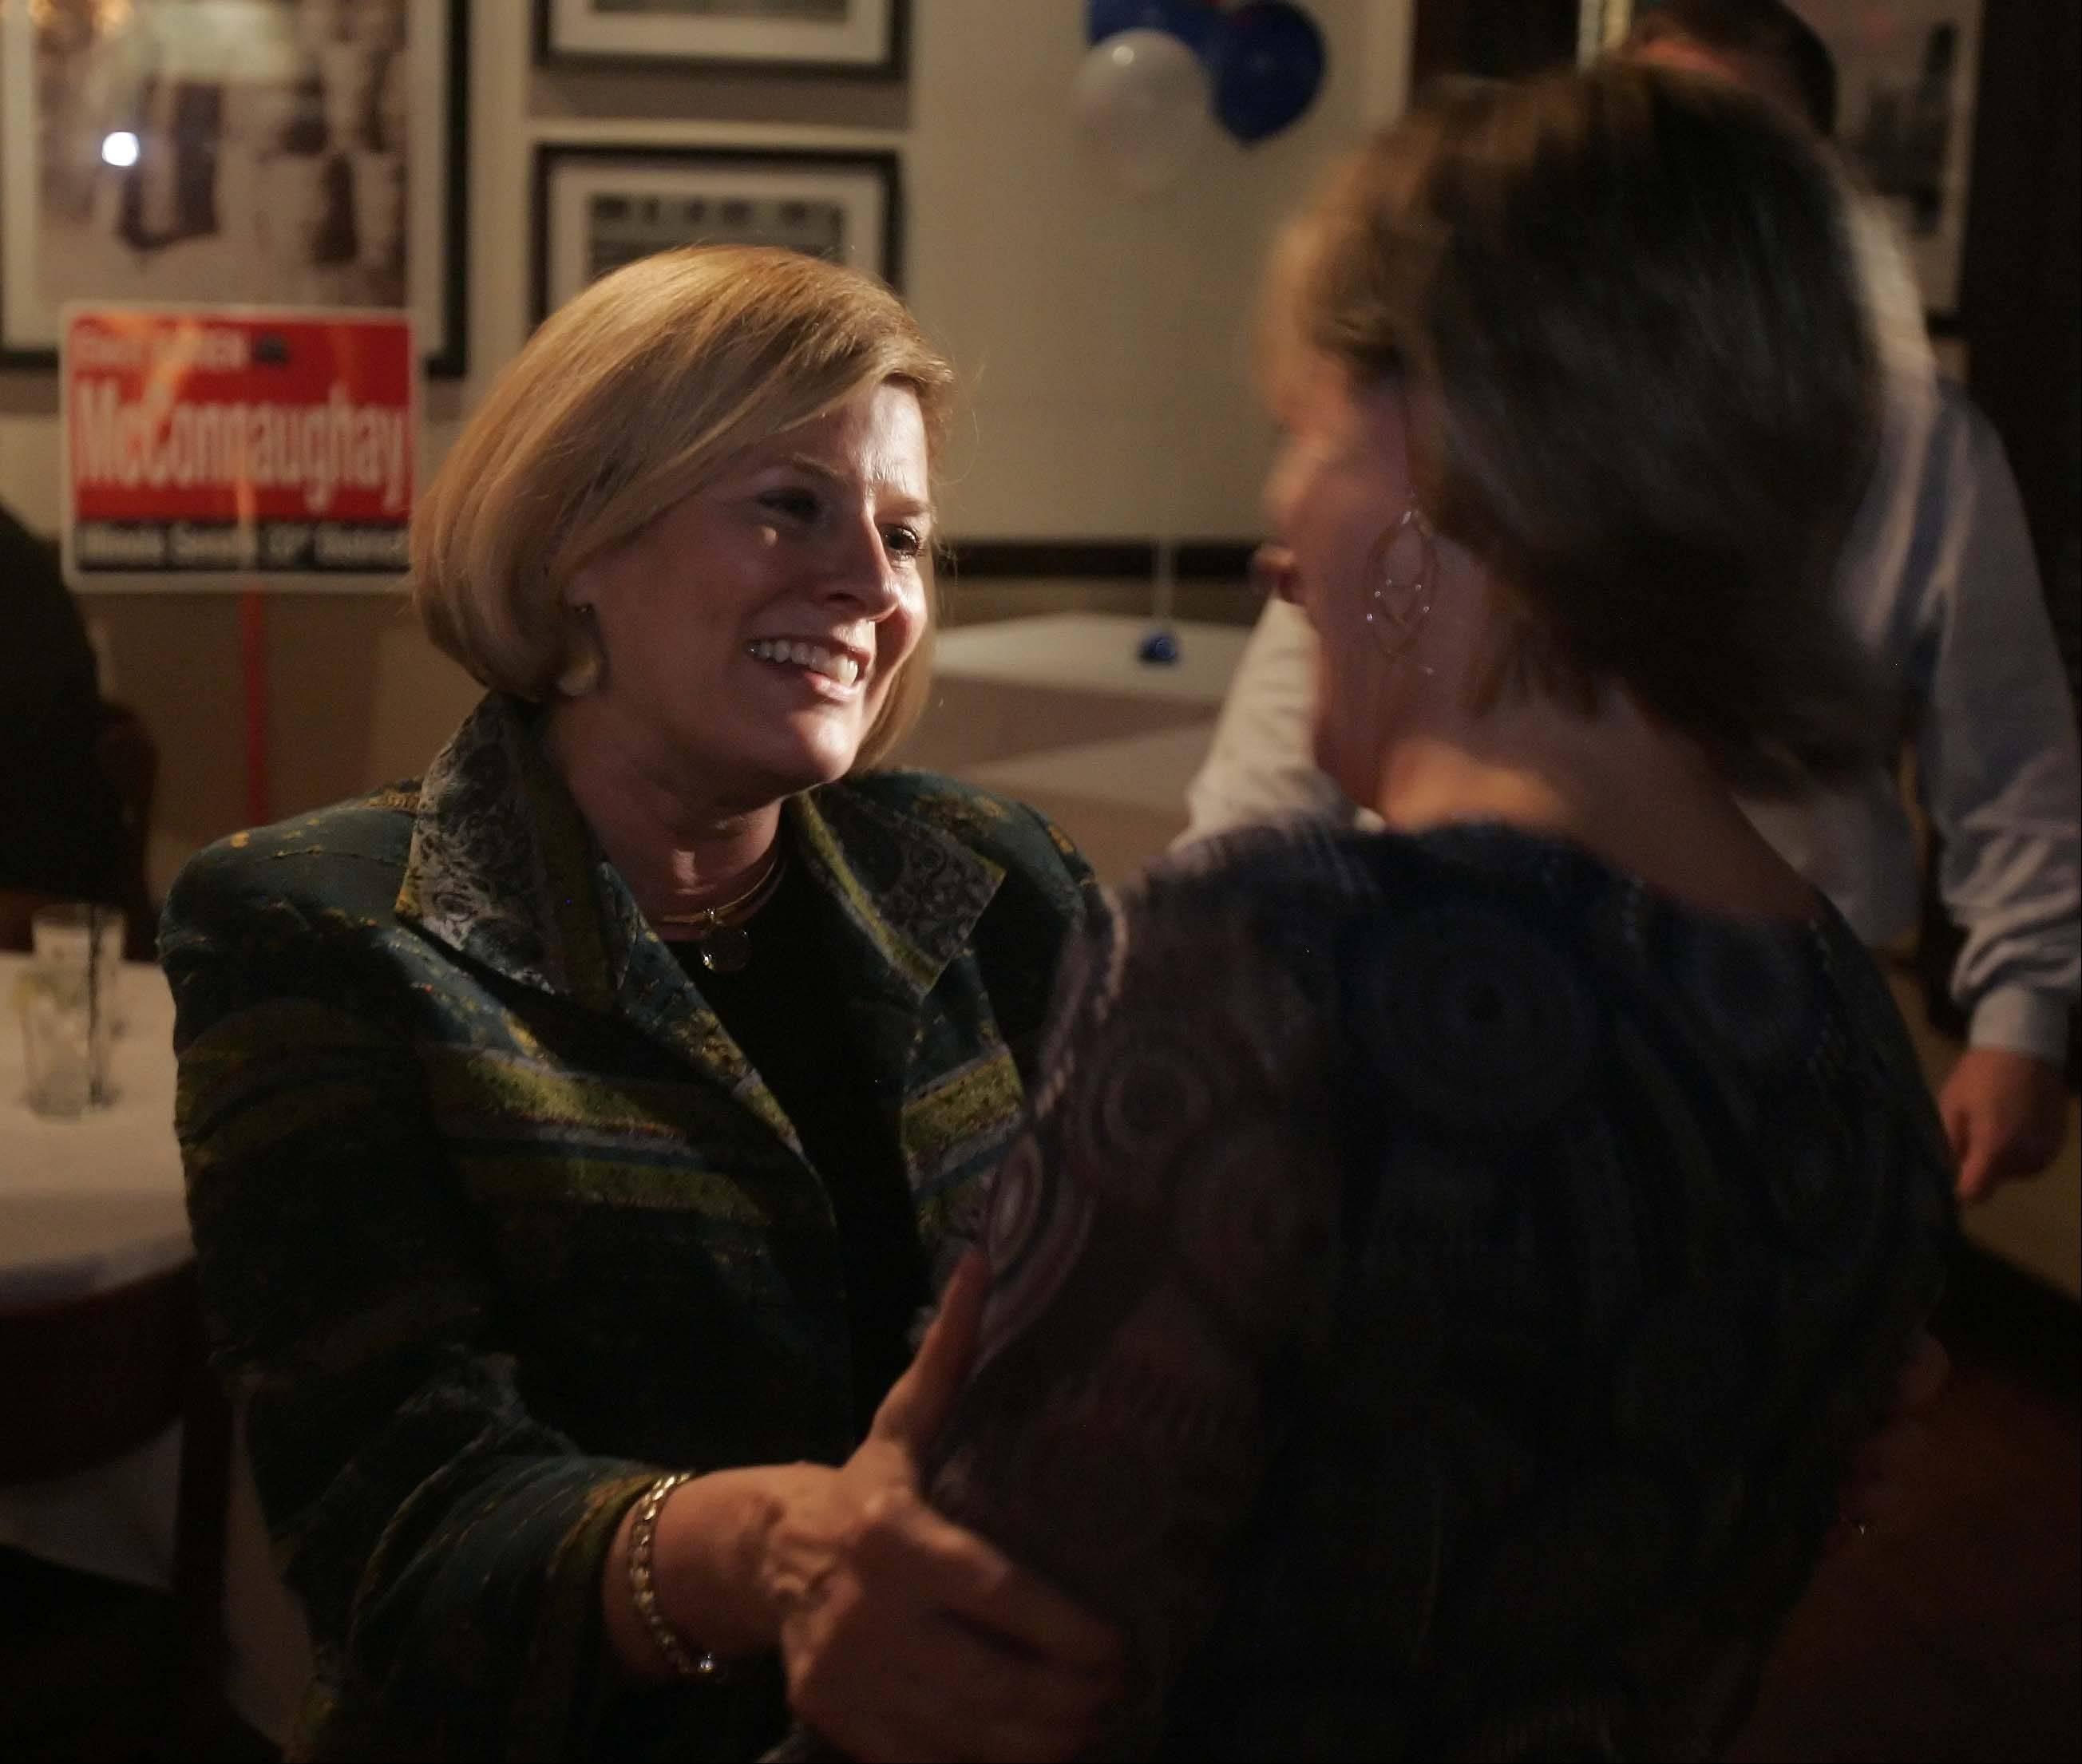 Karen McConnaughay talks to county board candidate Maggie Auger as results pour in for the Republican primary for the 33rd Senate District at Emmett's in West Dundee.